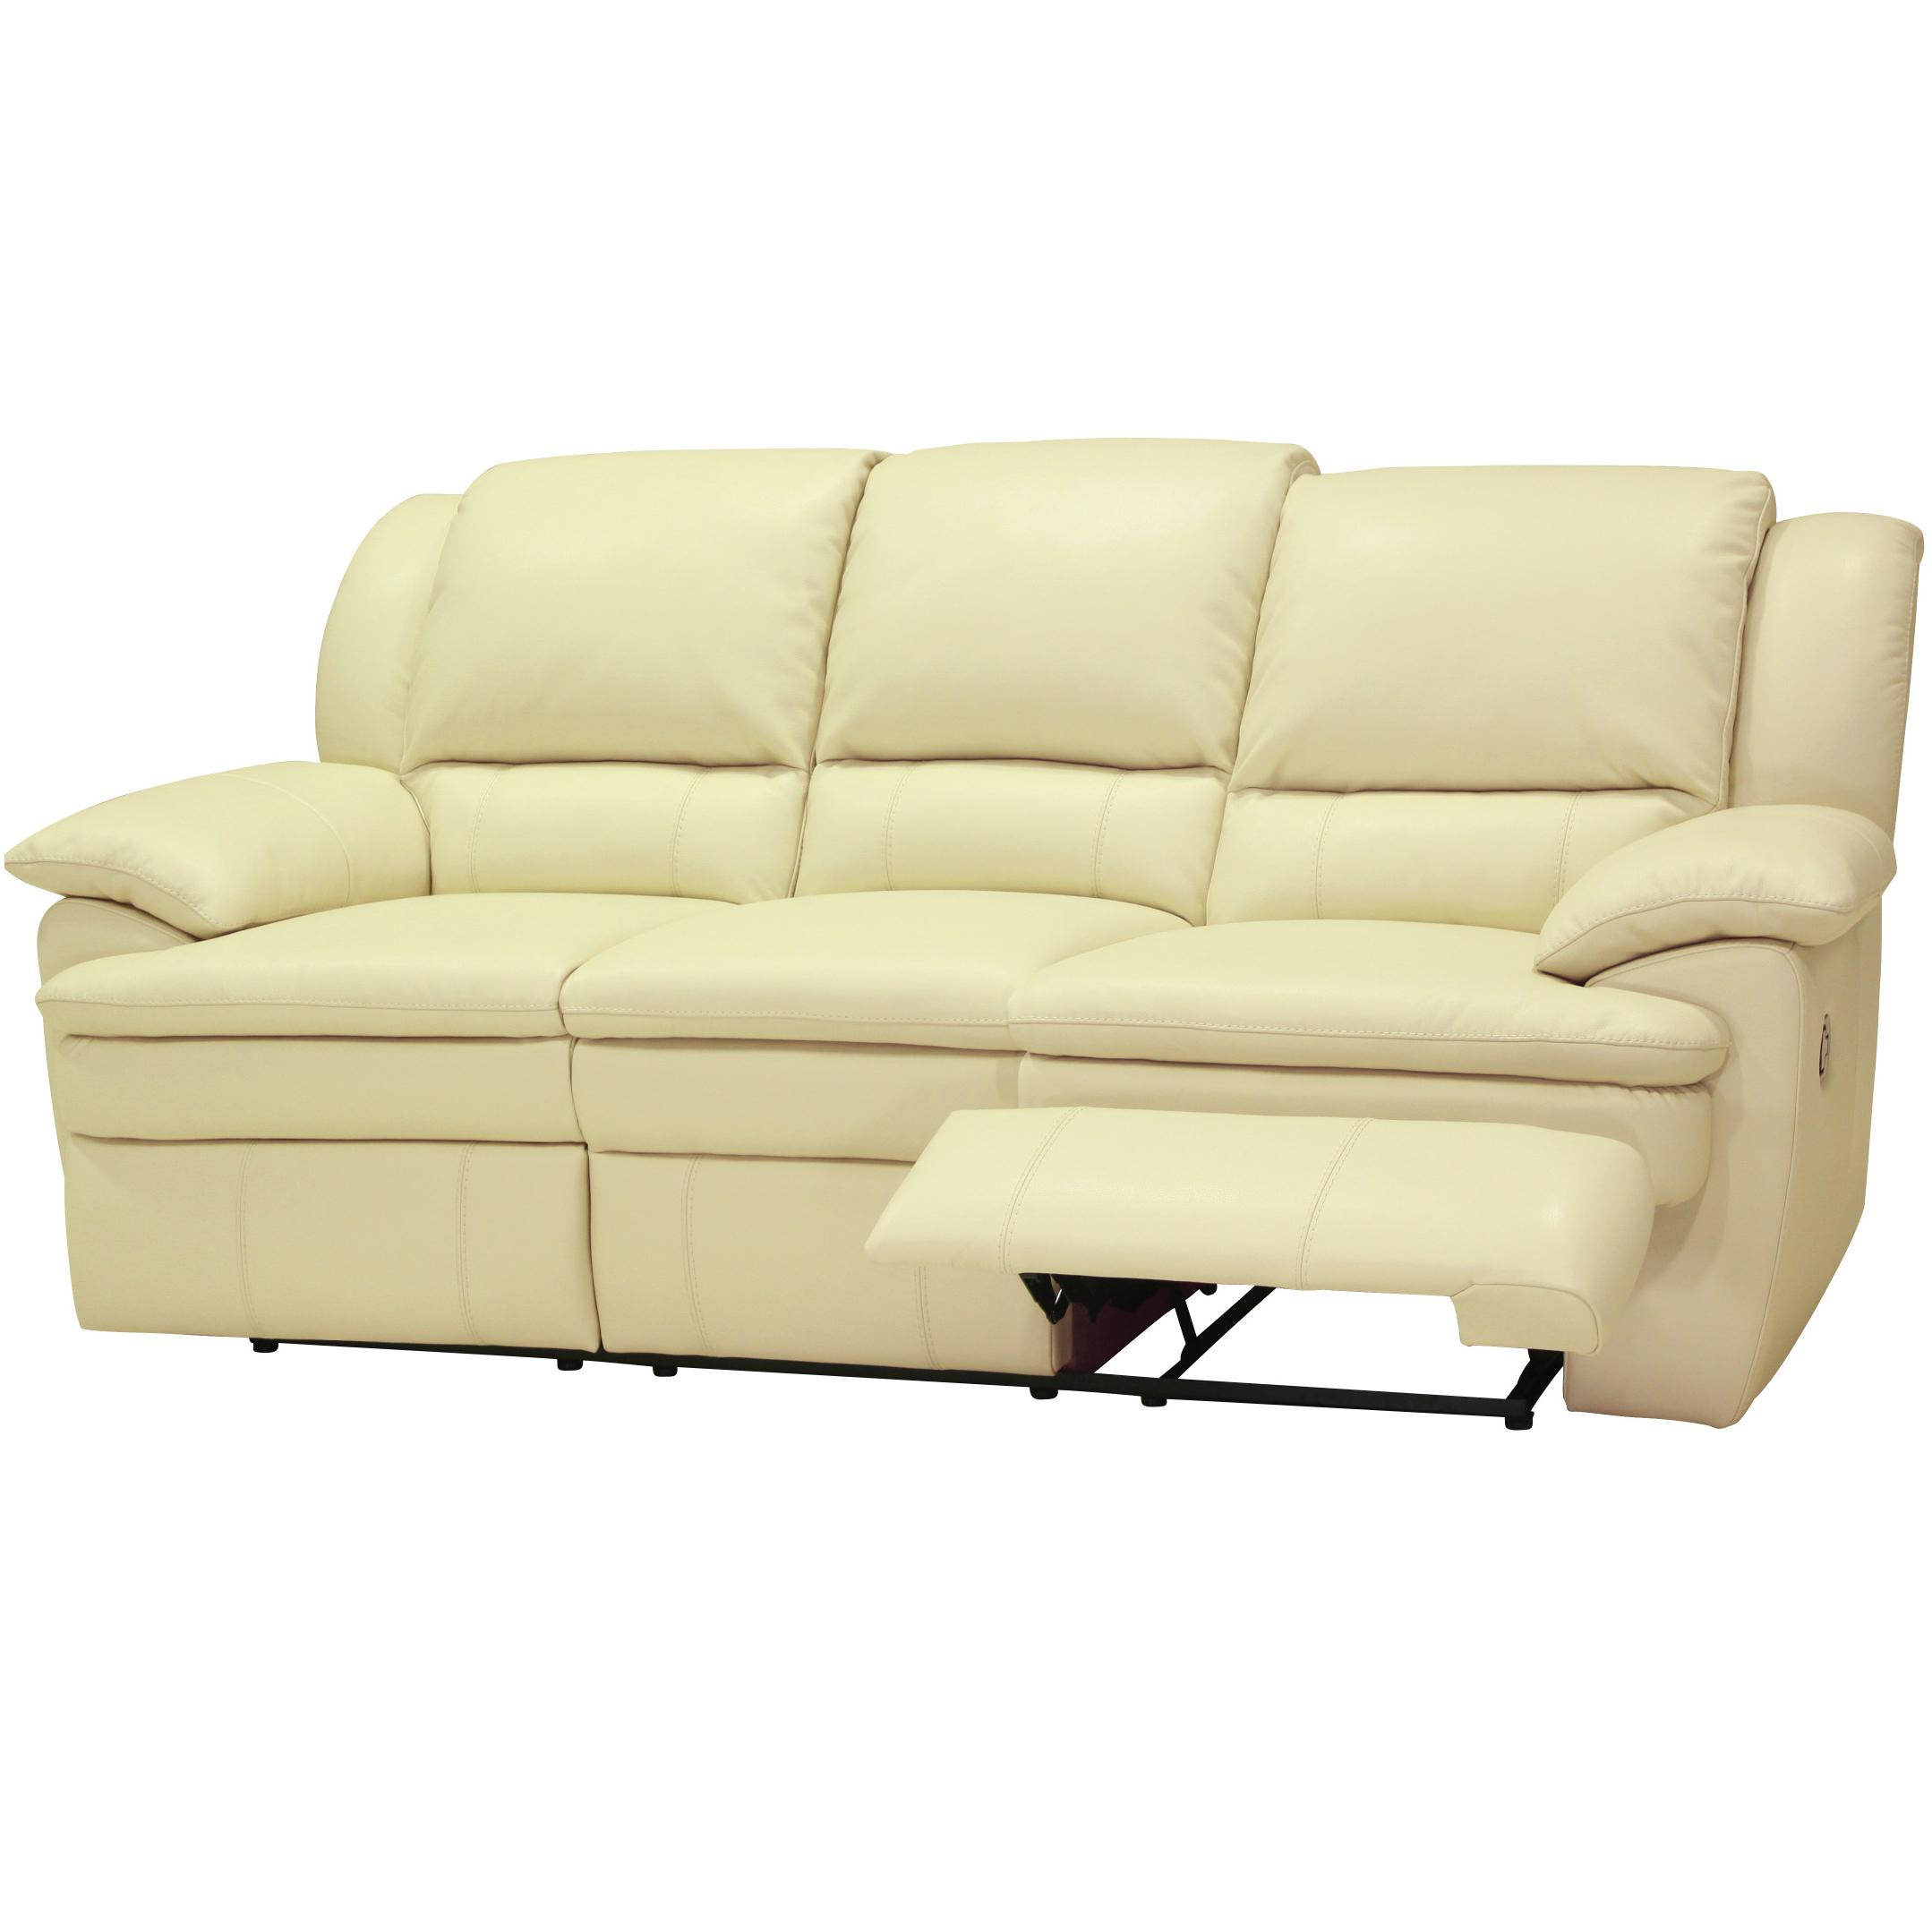 htl sofa range beds at dfs 2866 3 seater with motion fashion furniture